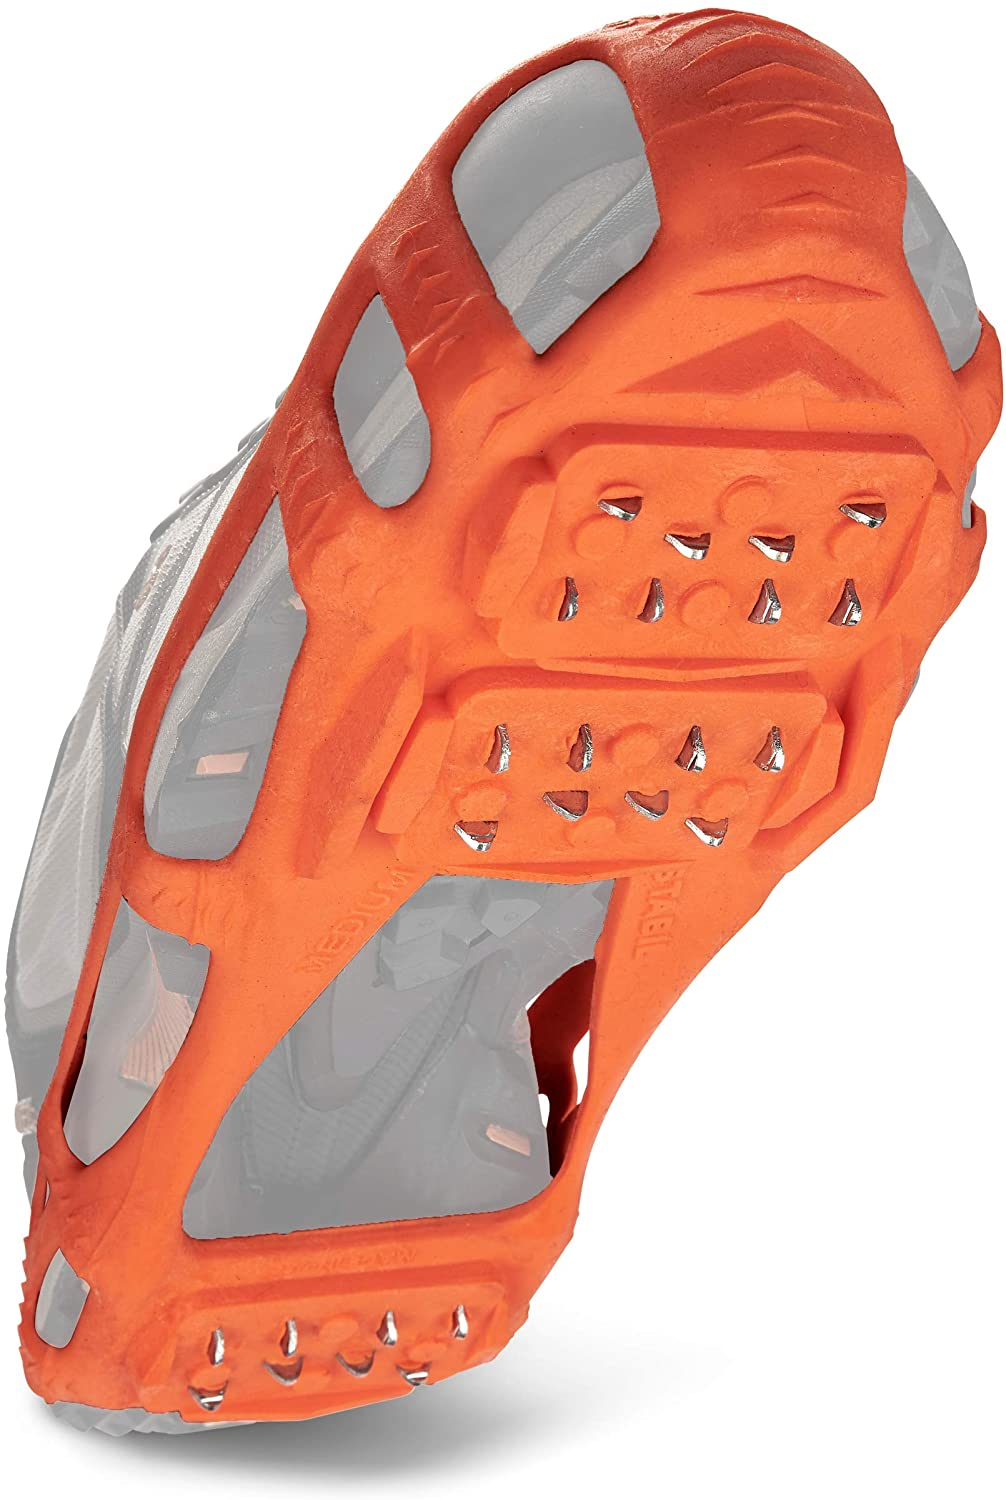 STABILicers Walk Traction Cleat for Walking on Snow and Ice, Orange, X-Large (1 Pair)